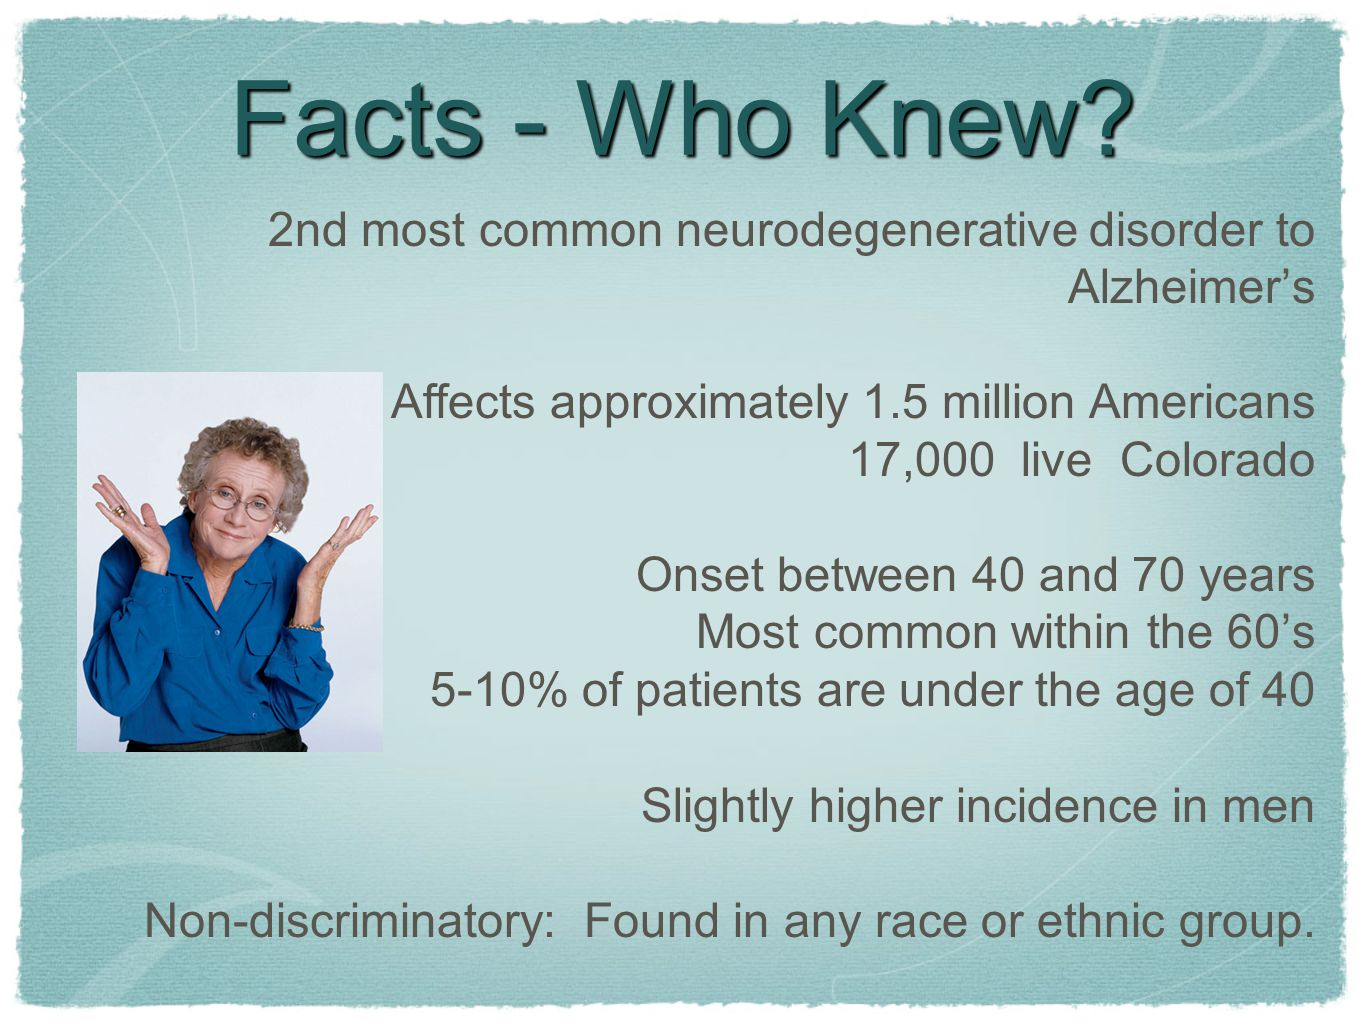 Facts - Who Knew 2nd most common neurodegenerative disorder to Alzheimer's. Affects approximately 1.5 million Americans.